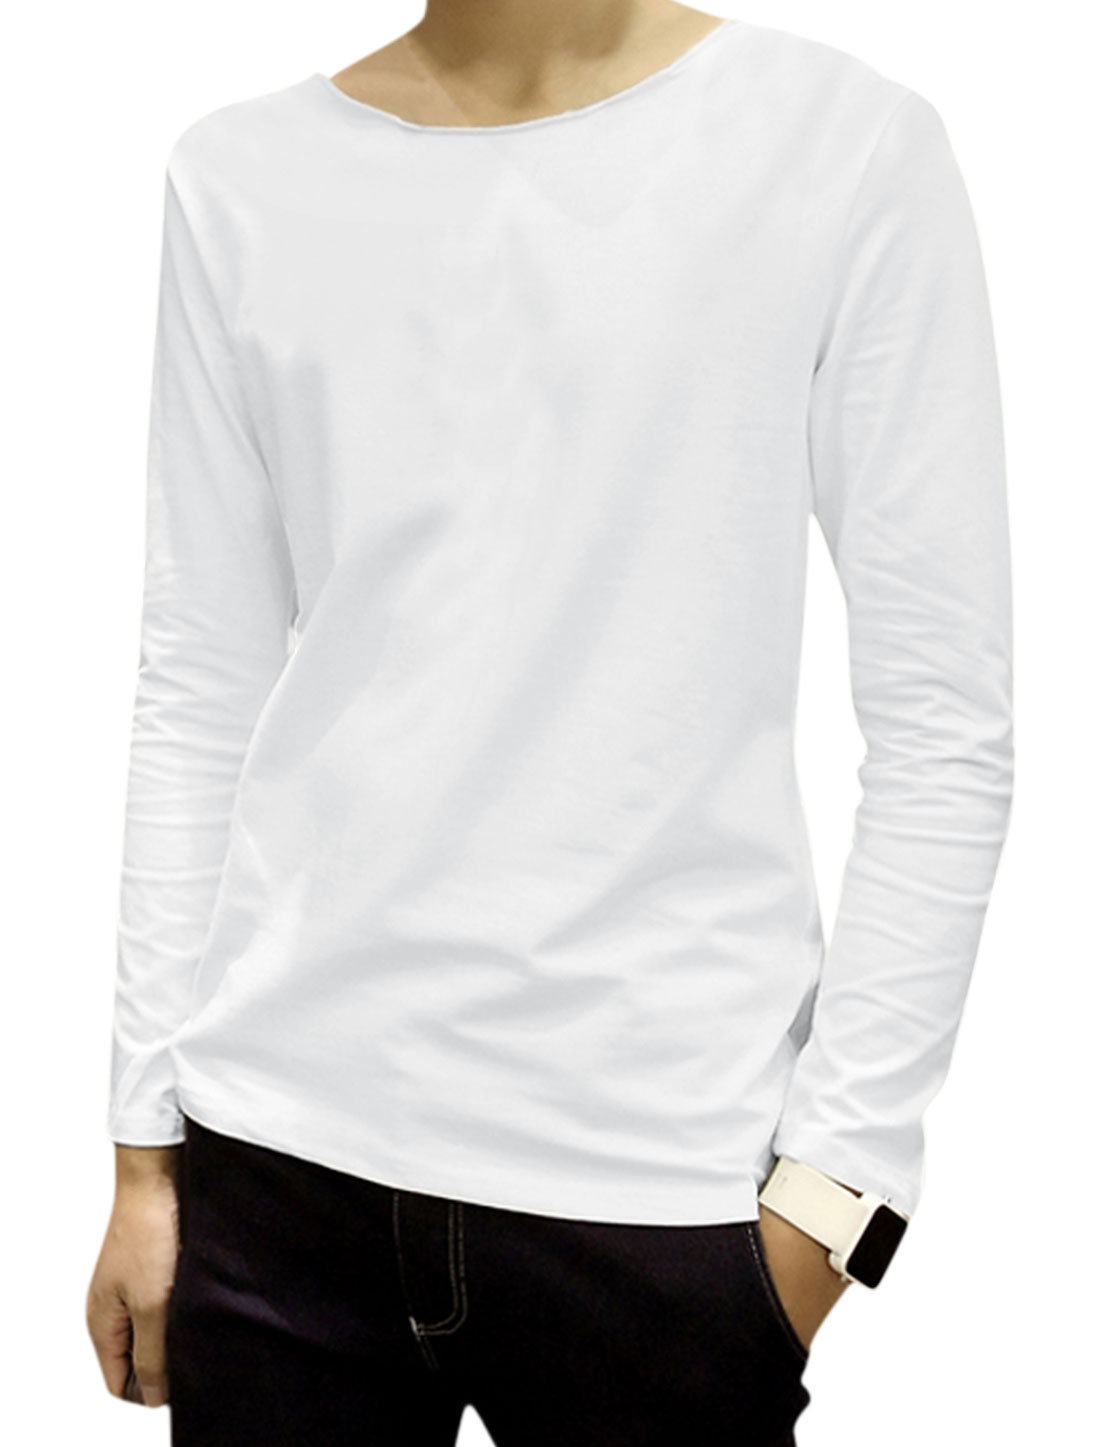 Men Raw Edge Neckline Long Sleeves Round Neck Tee Shirt White M